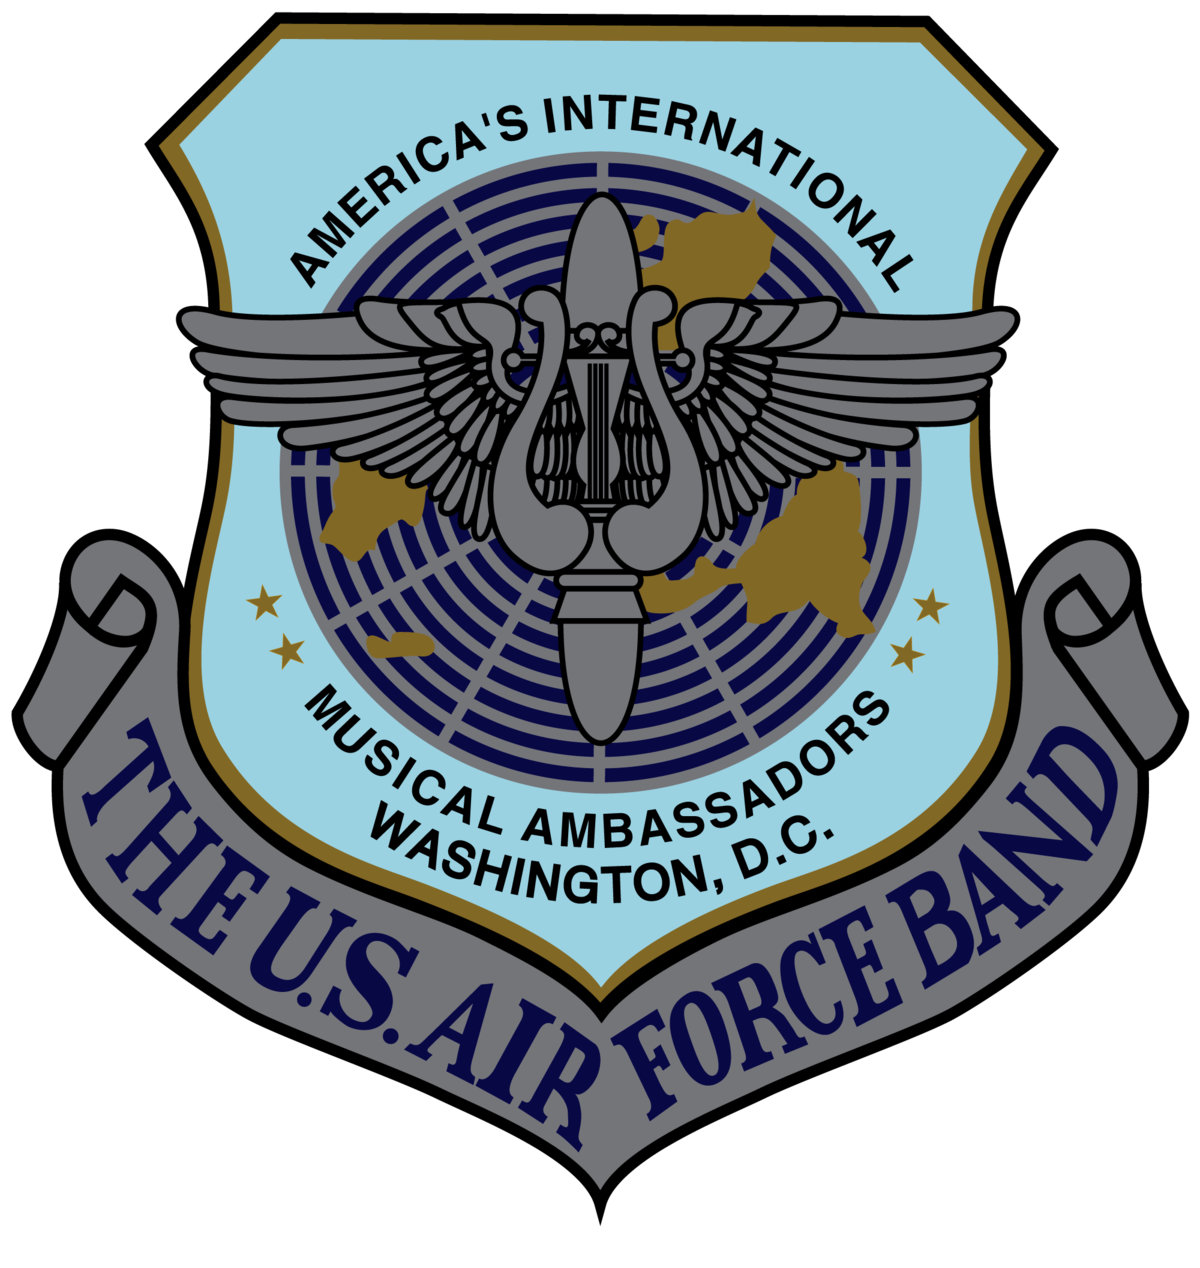 United State Air Force Band